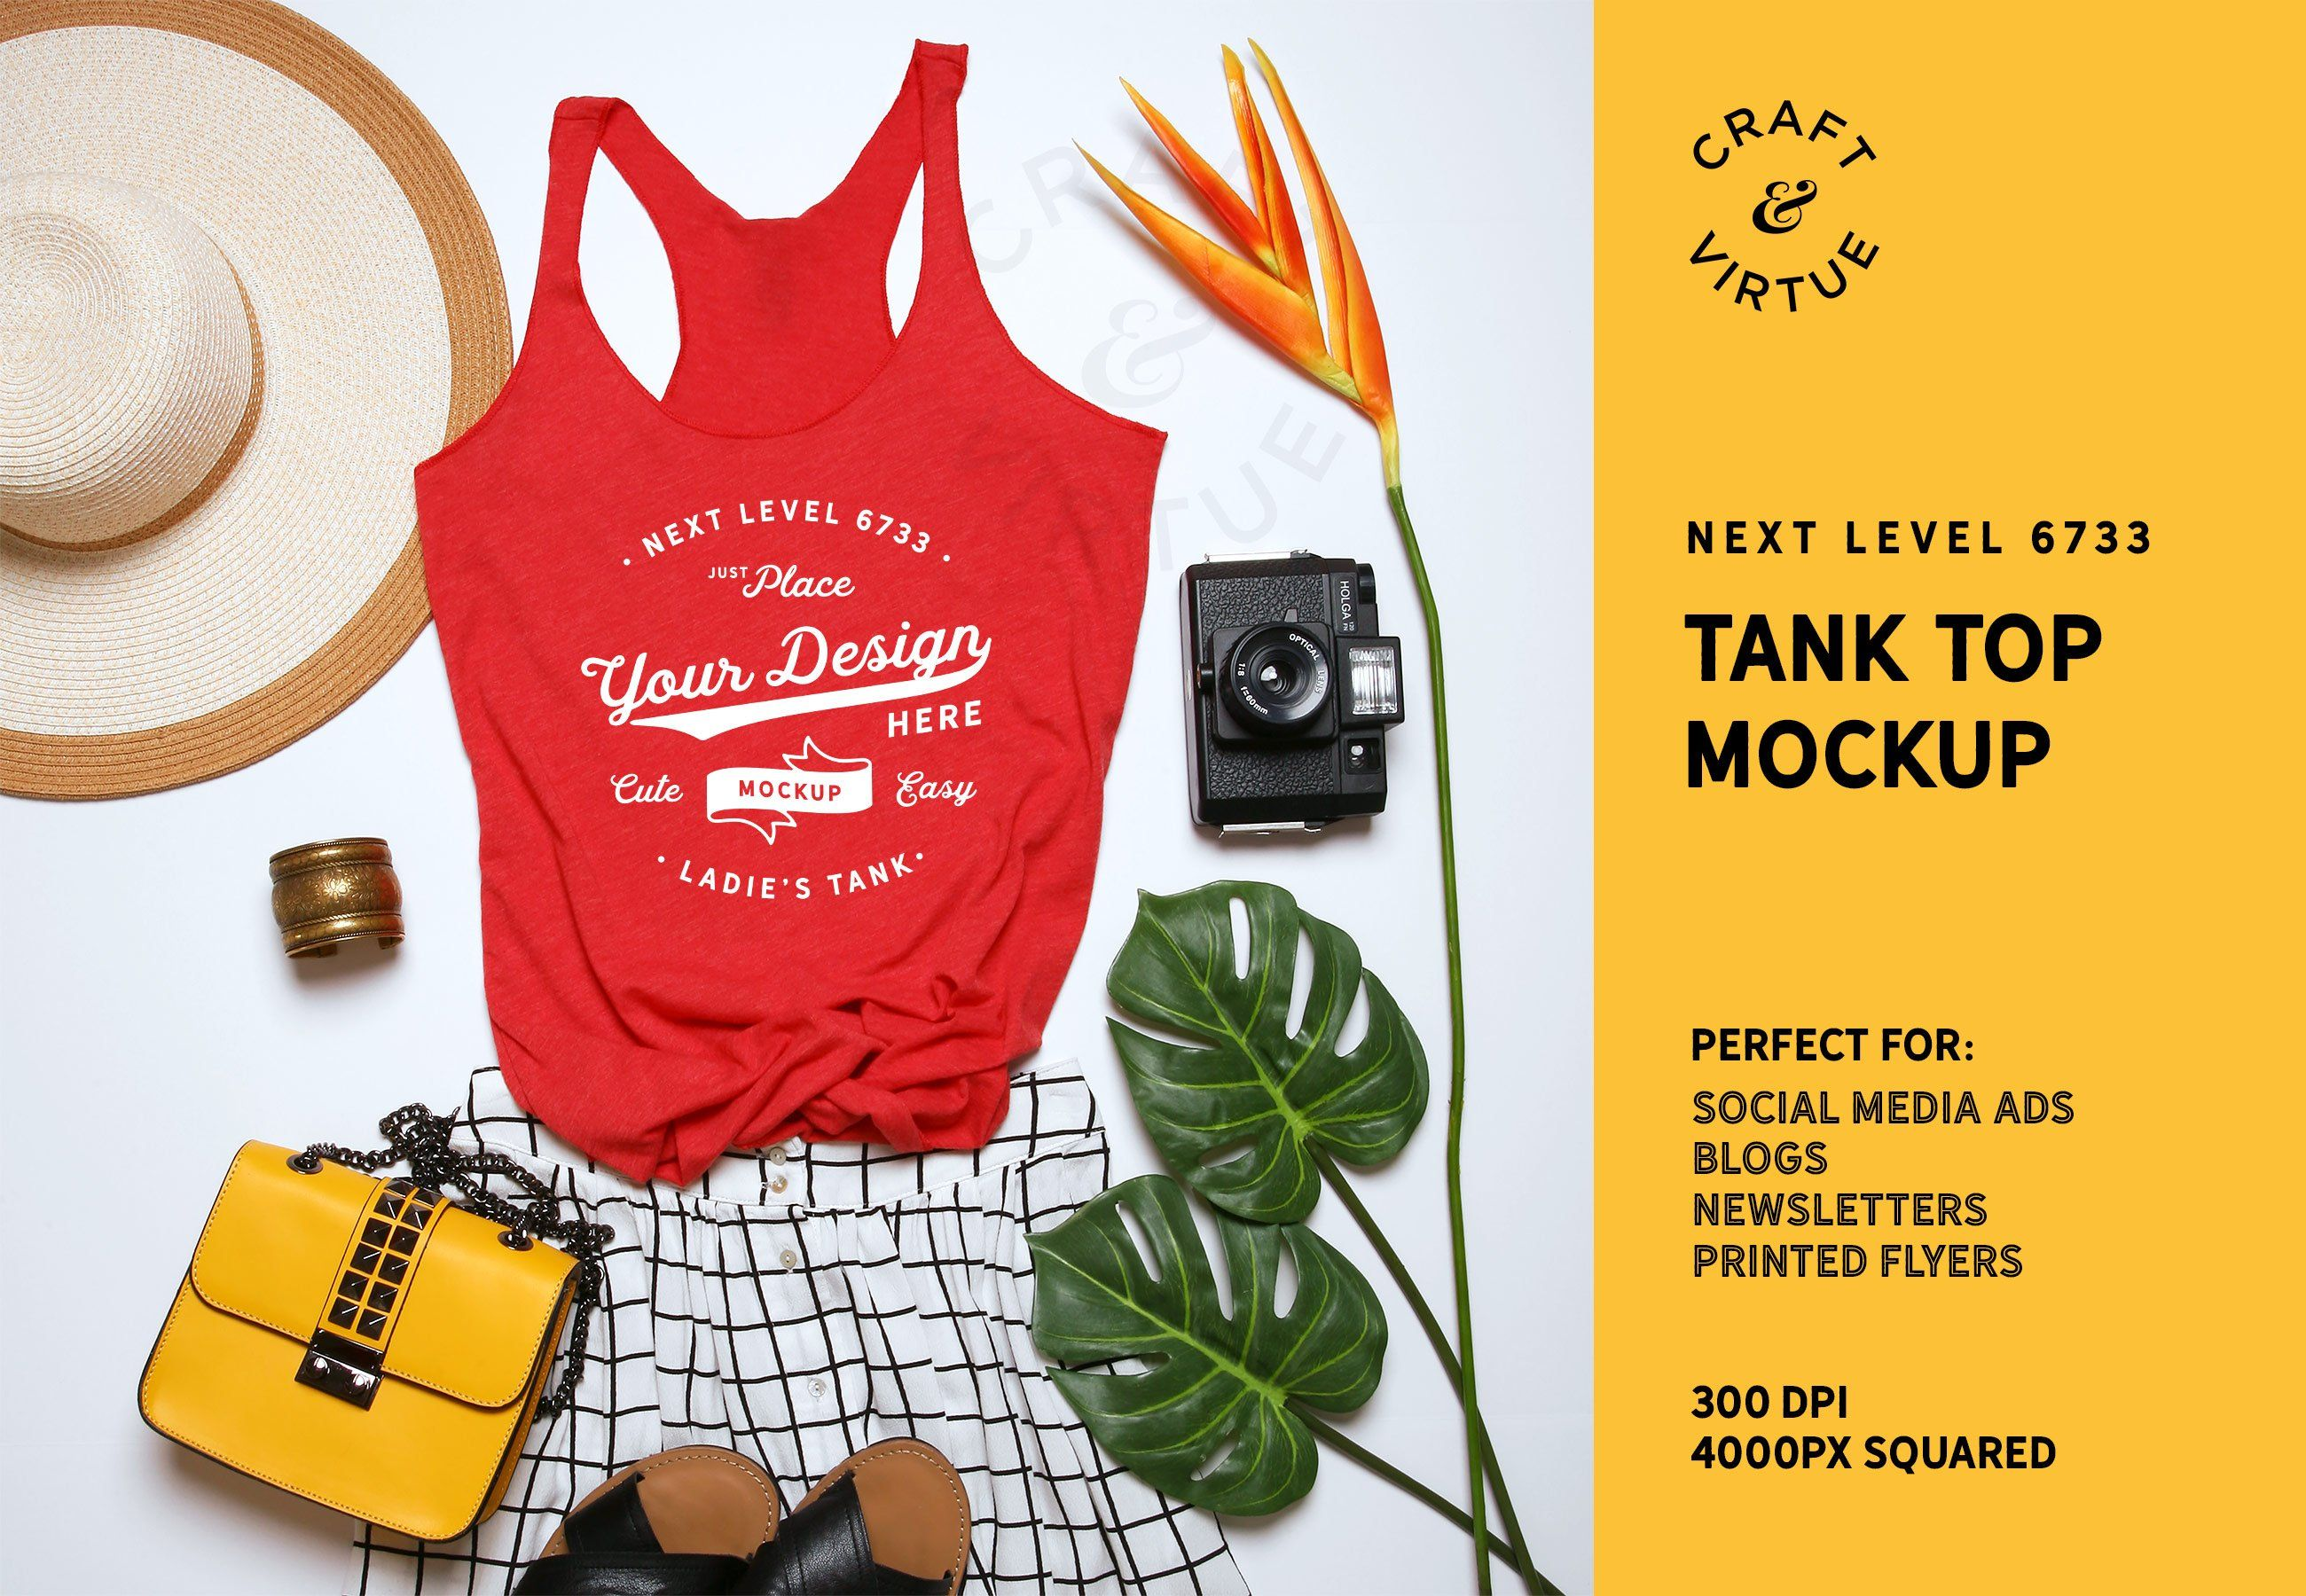 Tank Top Mockup Next Level 6733 , Ad, pictured